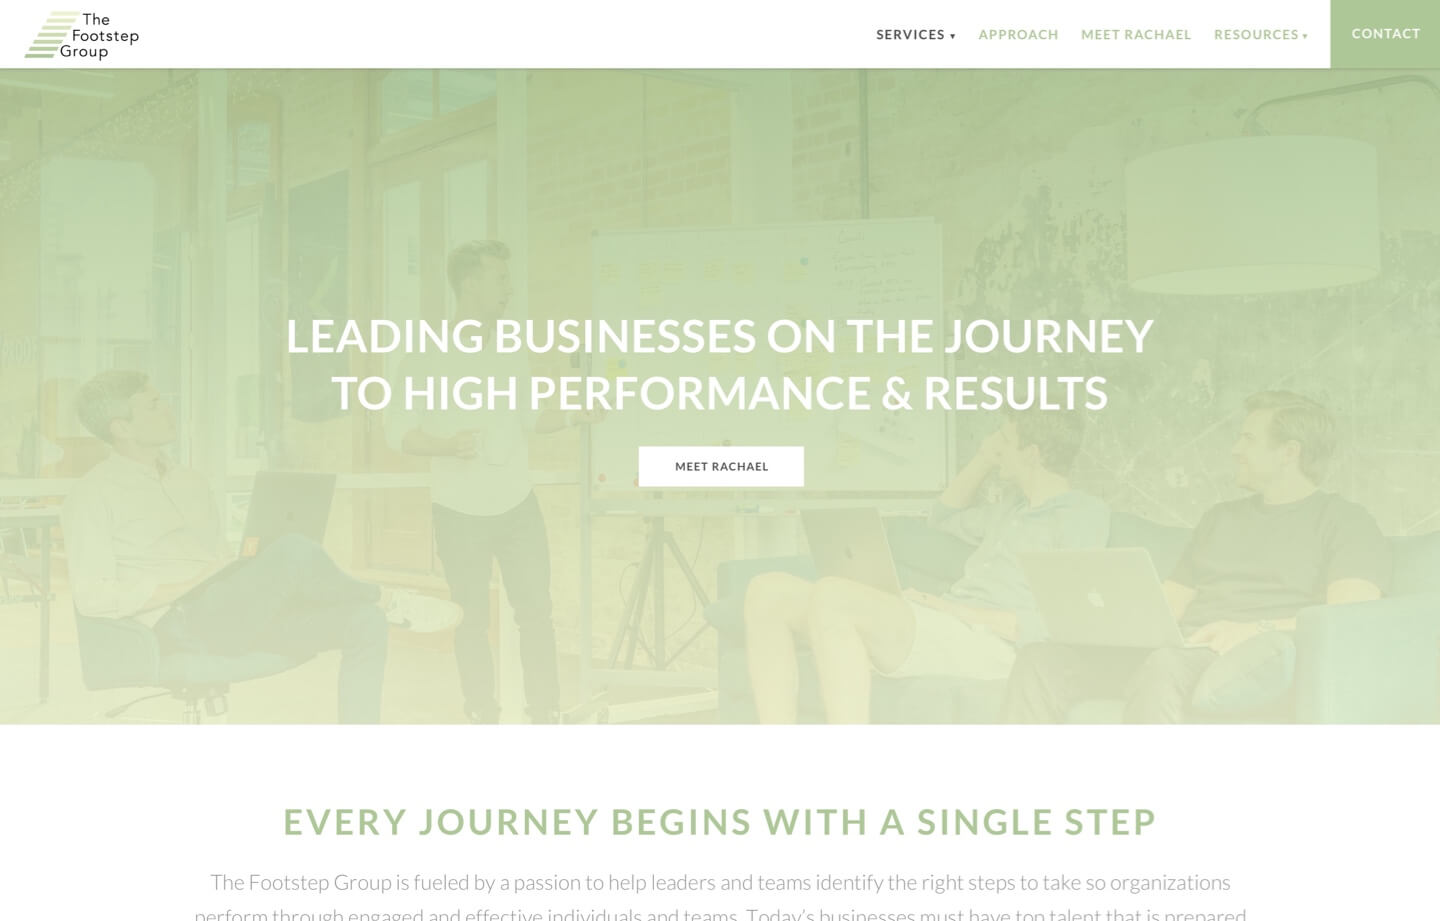 The Footstep Group consulting website Leading businesses on the journey to high performance and results